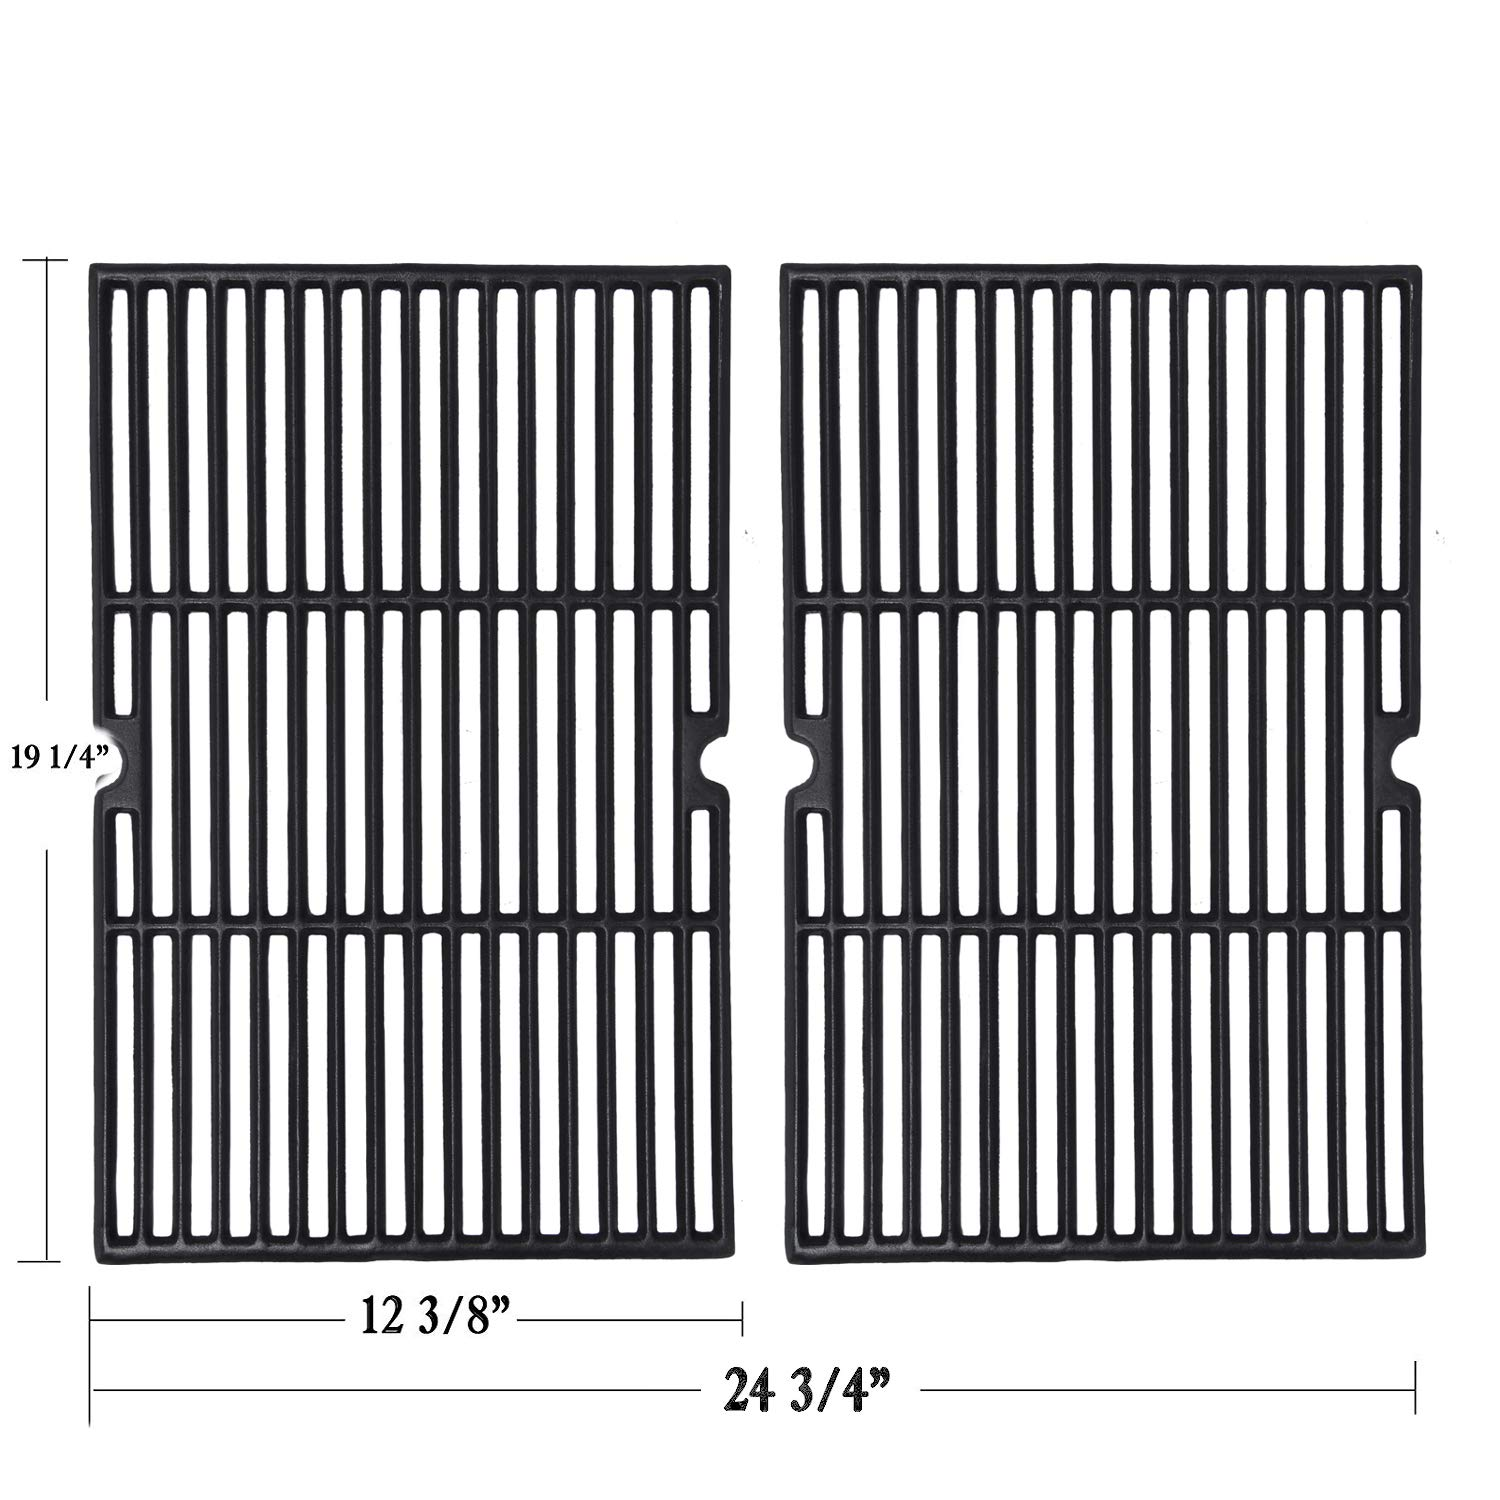 GGC Grill Grid Grate Replacement for Charmglow, BBQ Grillware, Jenn-Air, Grill Zone, Weber, Kenmore, Nexgrill and Others, 2-Pack Porcelain Coated Cast Iron Cooking Grid (12 3/8'' x 19 1/4'' for Each)